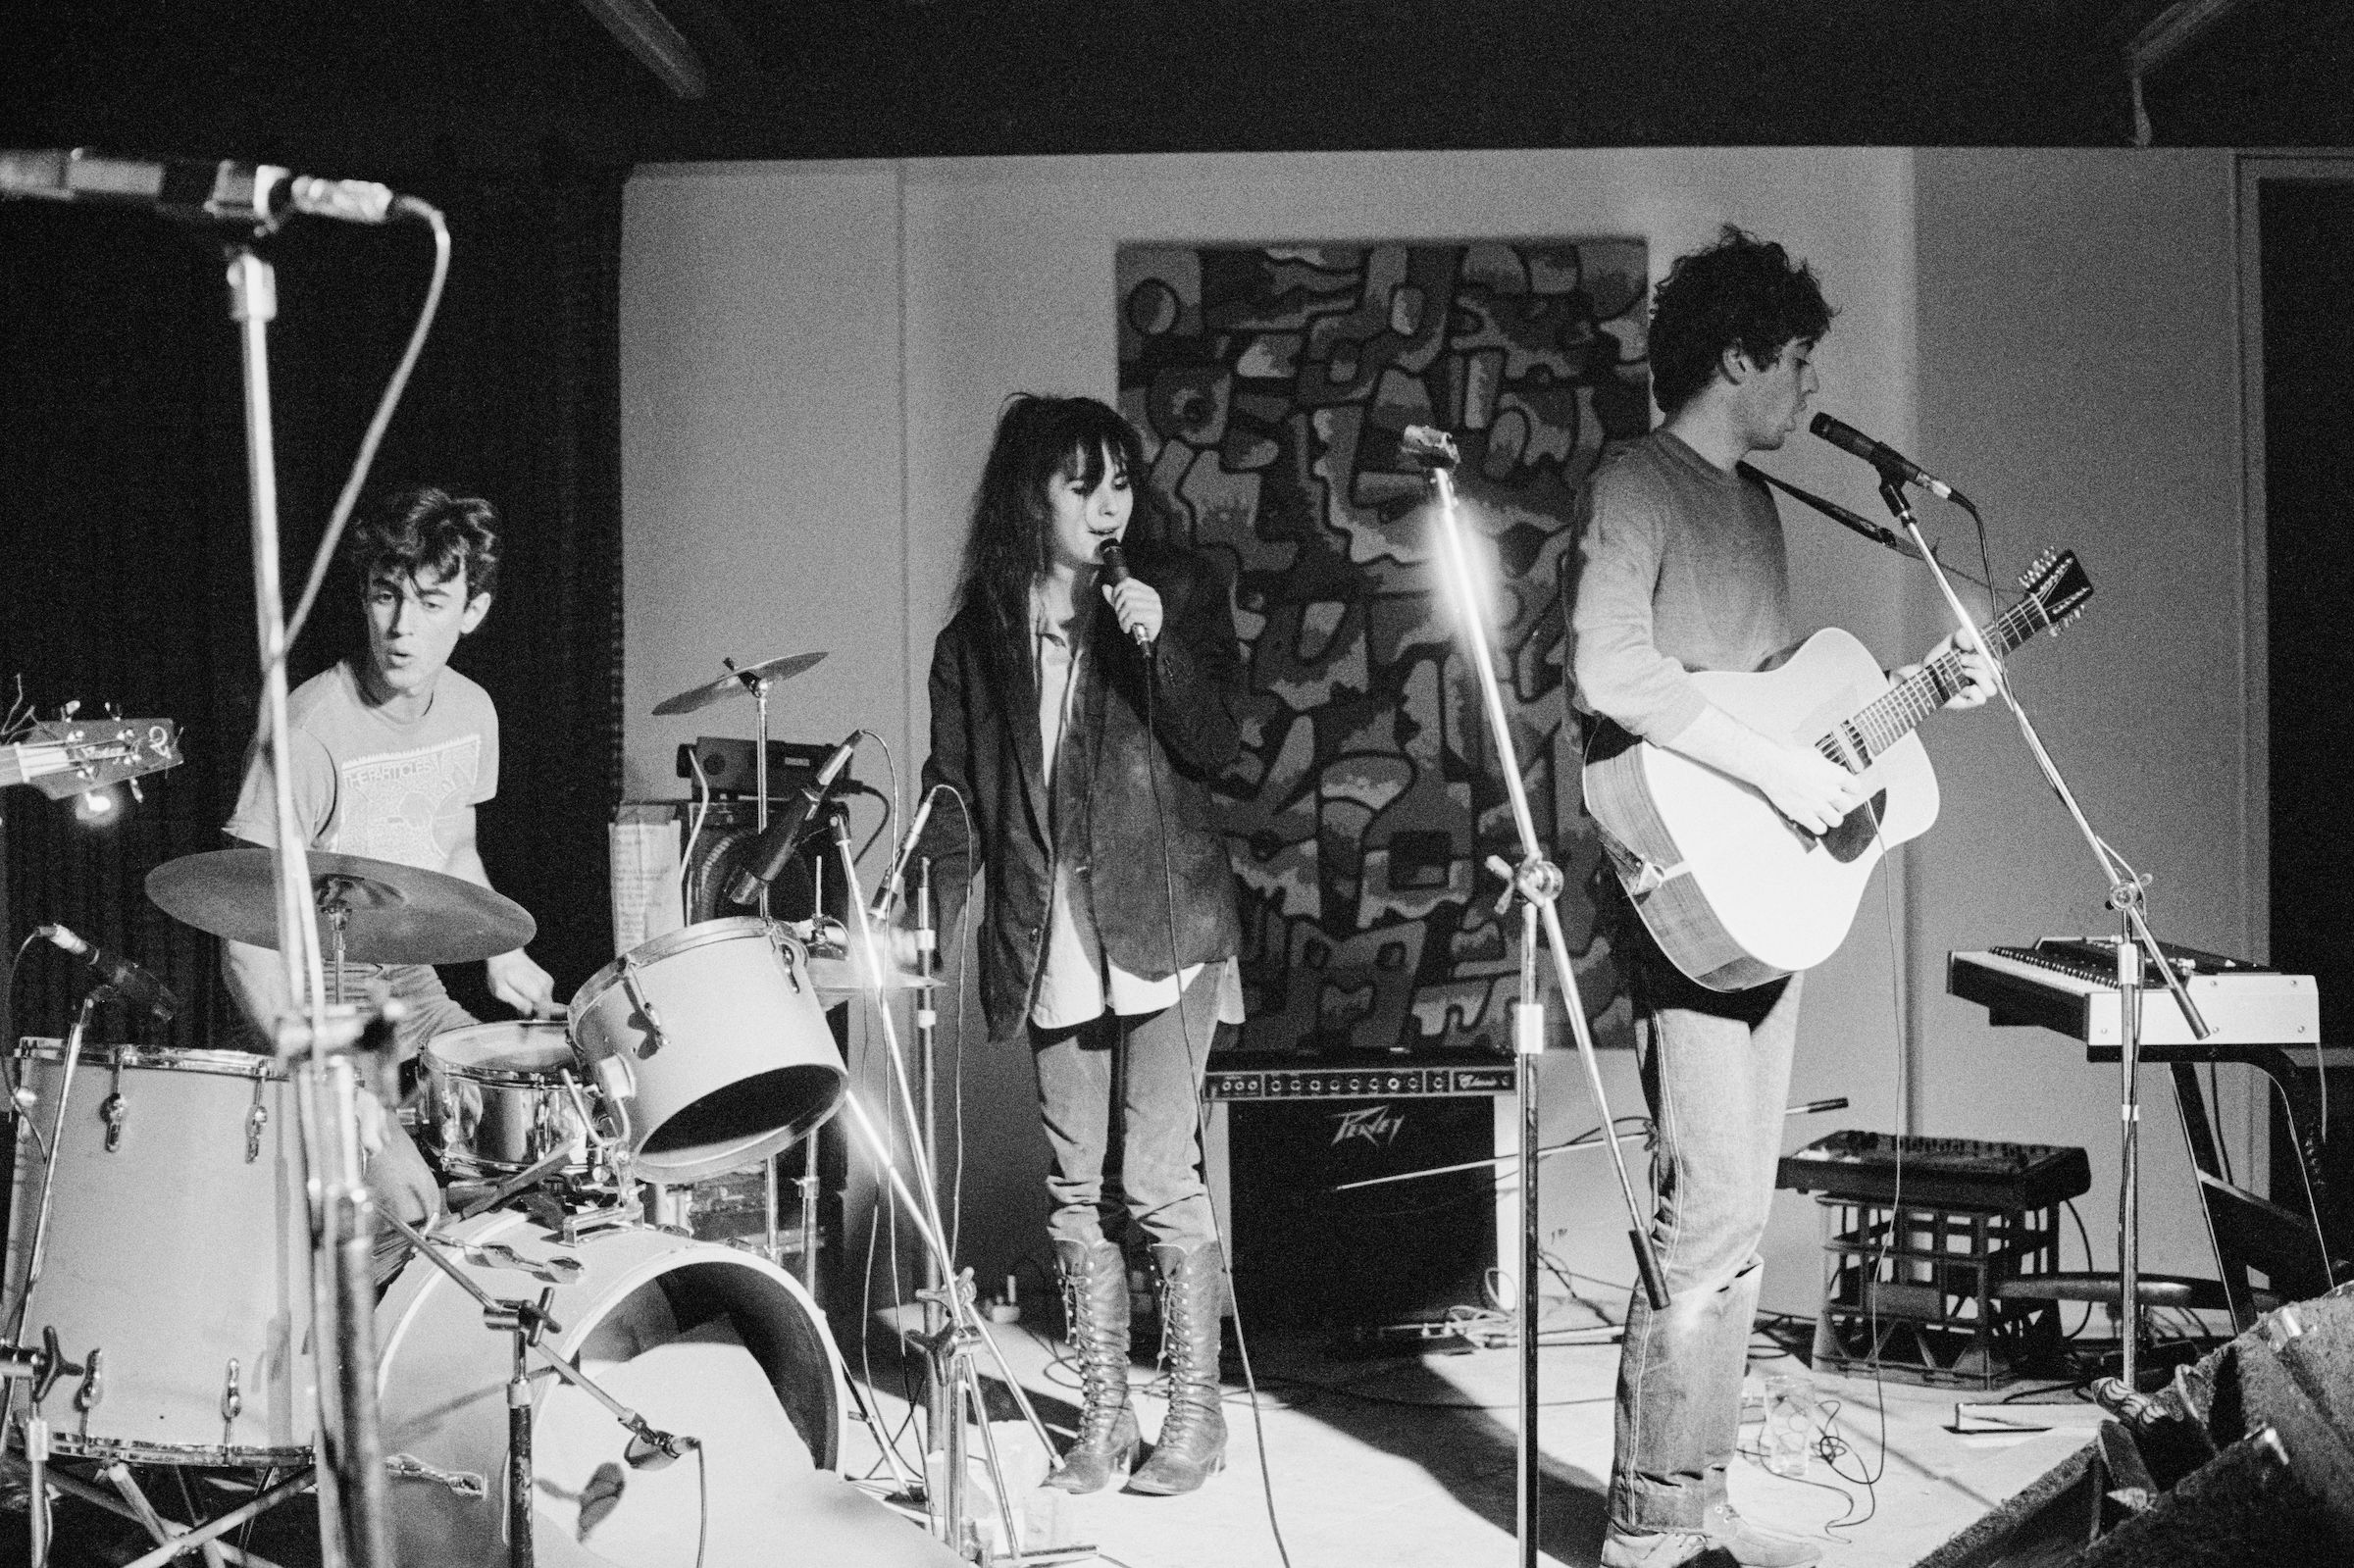 The Lighthouse Keepers, ANU Union, Canberra, 1983. Juliet Ward (vocals), Greg Appel (guitar), Steven Williams (drums) 'pling